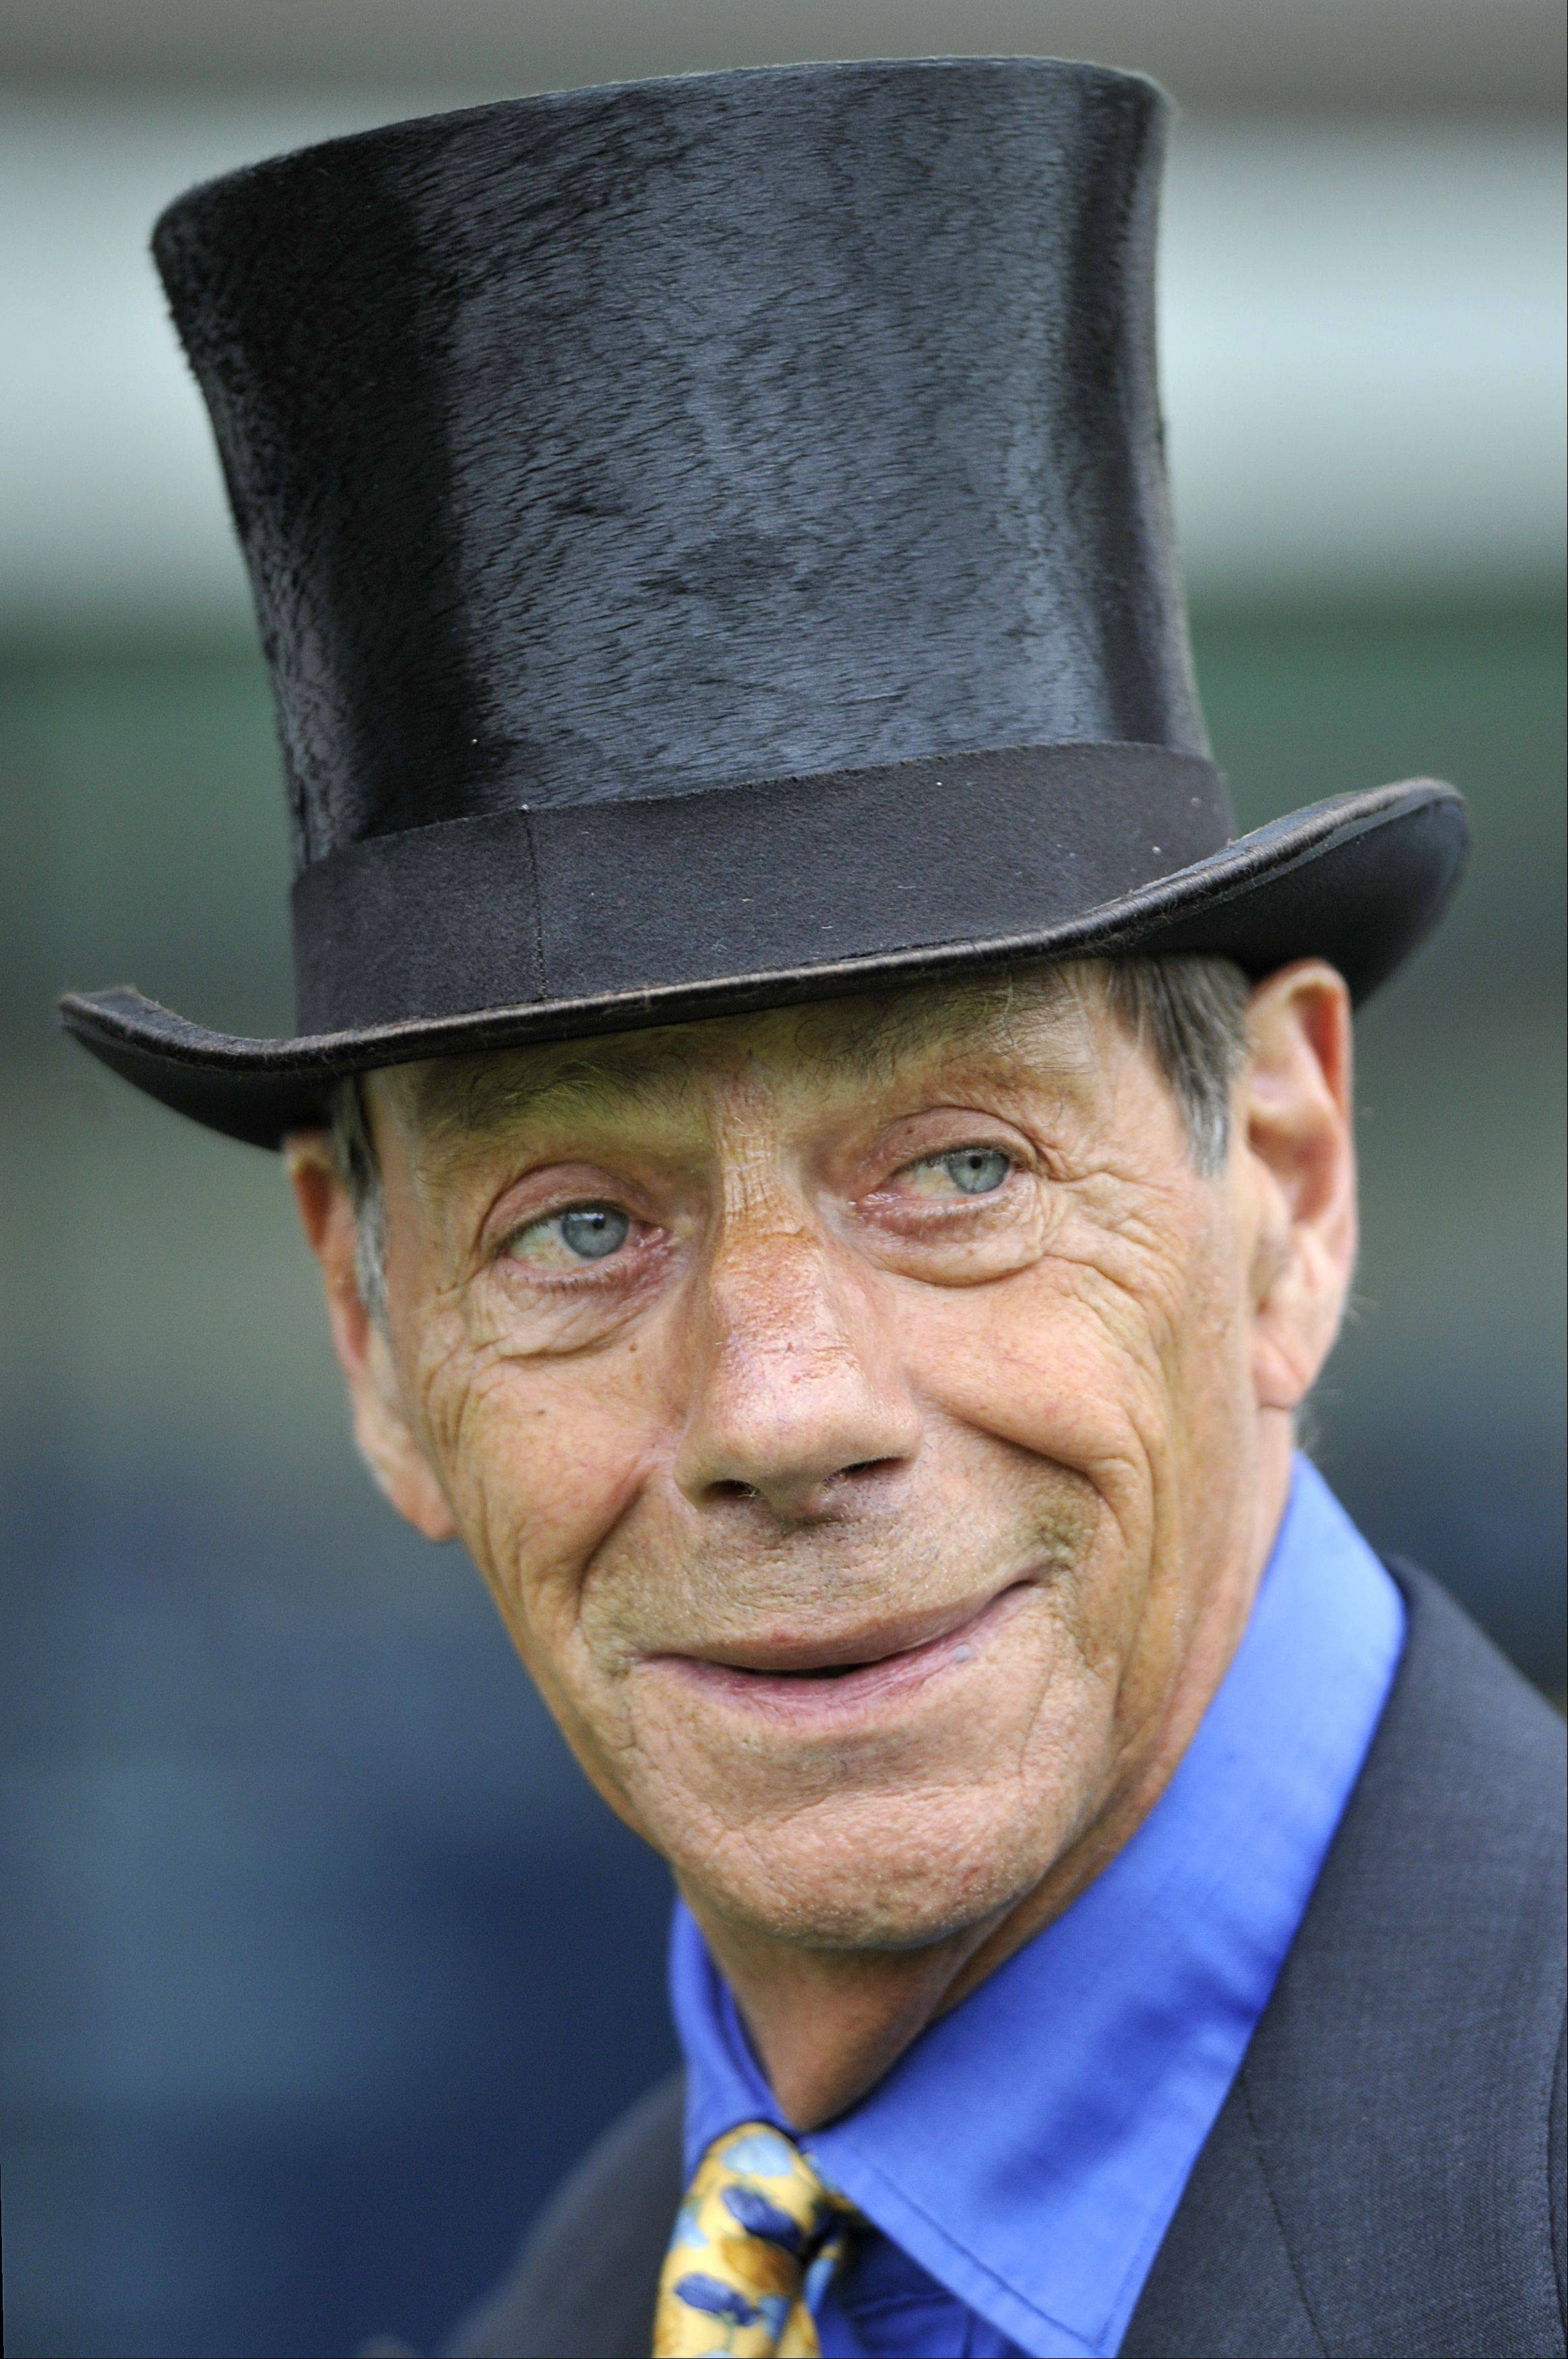 Sir Henry Cecil, one of British horse racing's most successful trainers with 25 British Classic winners, has died.